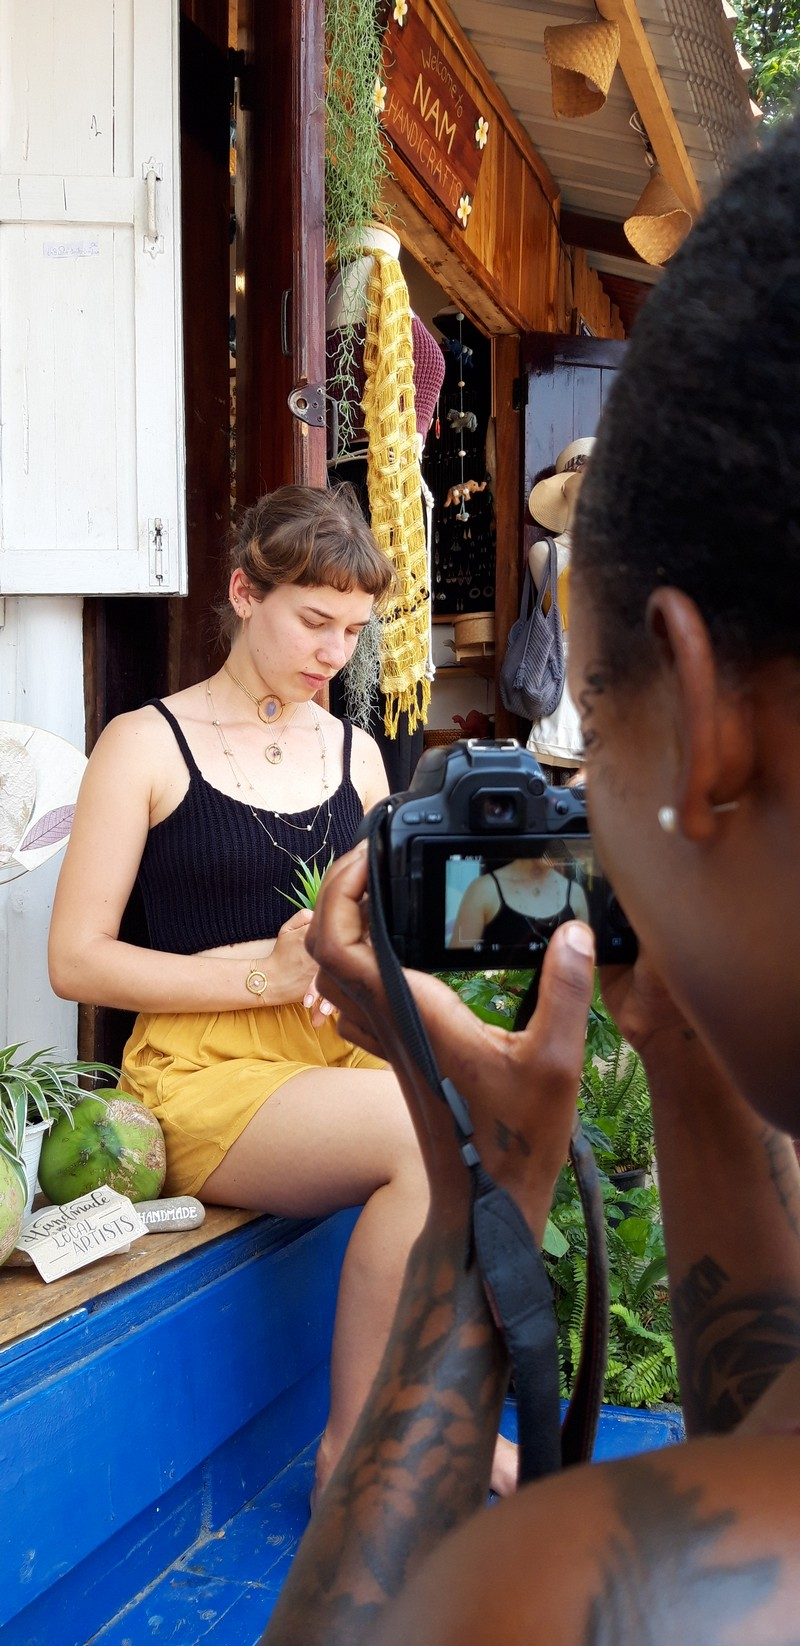 We also had the chance to do a photoshoot with the items sold at the Garden of Eden. For this, we counted with the help of Sophia that was volunteering next door. It was super fun!